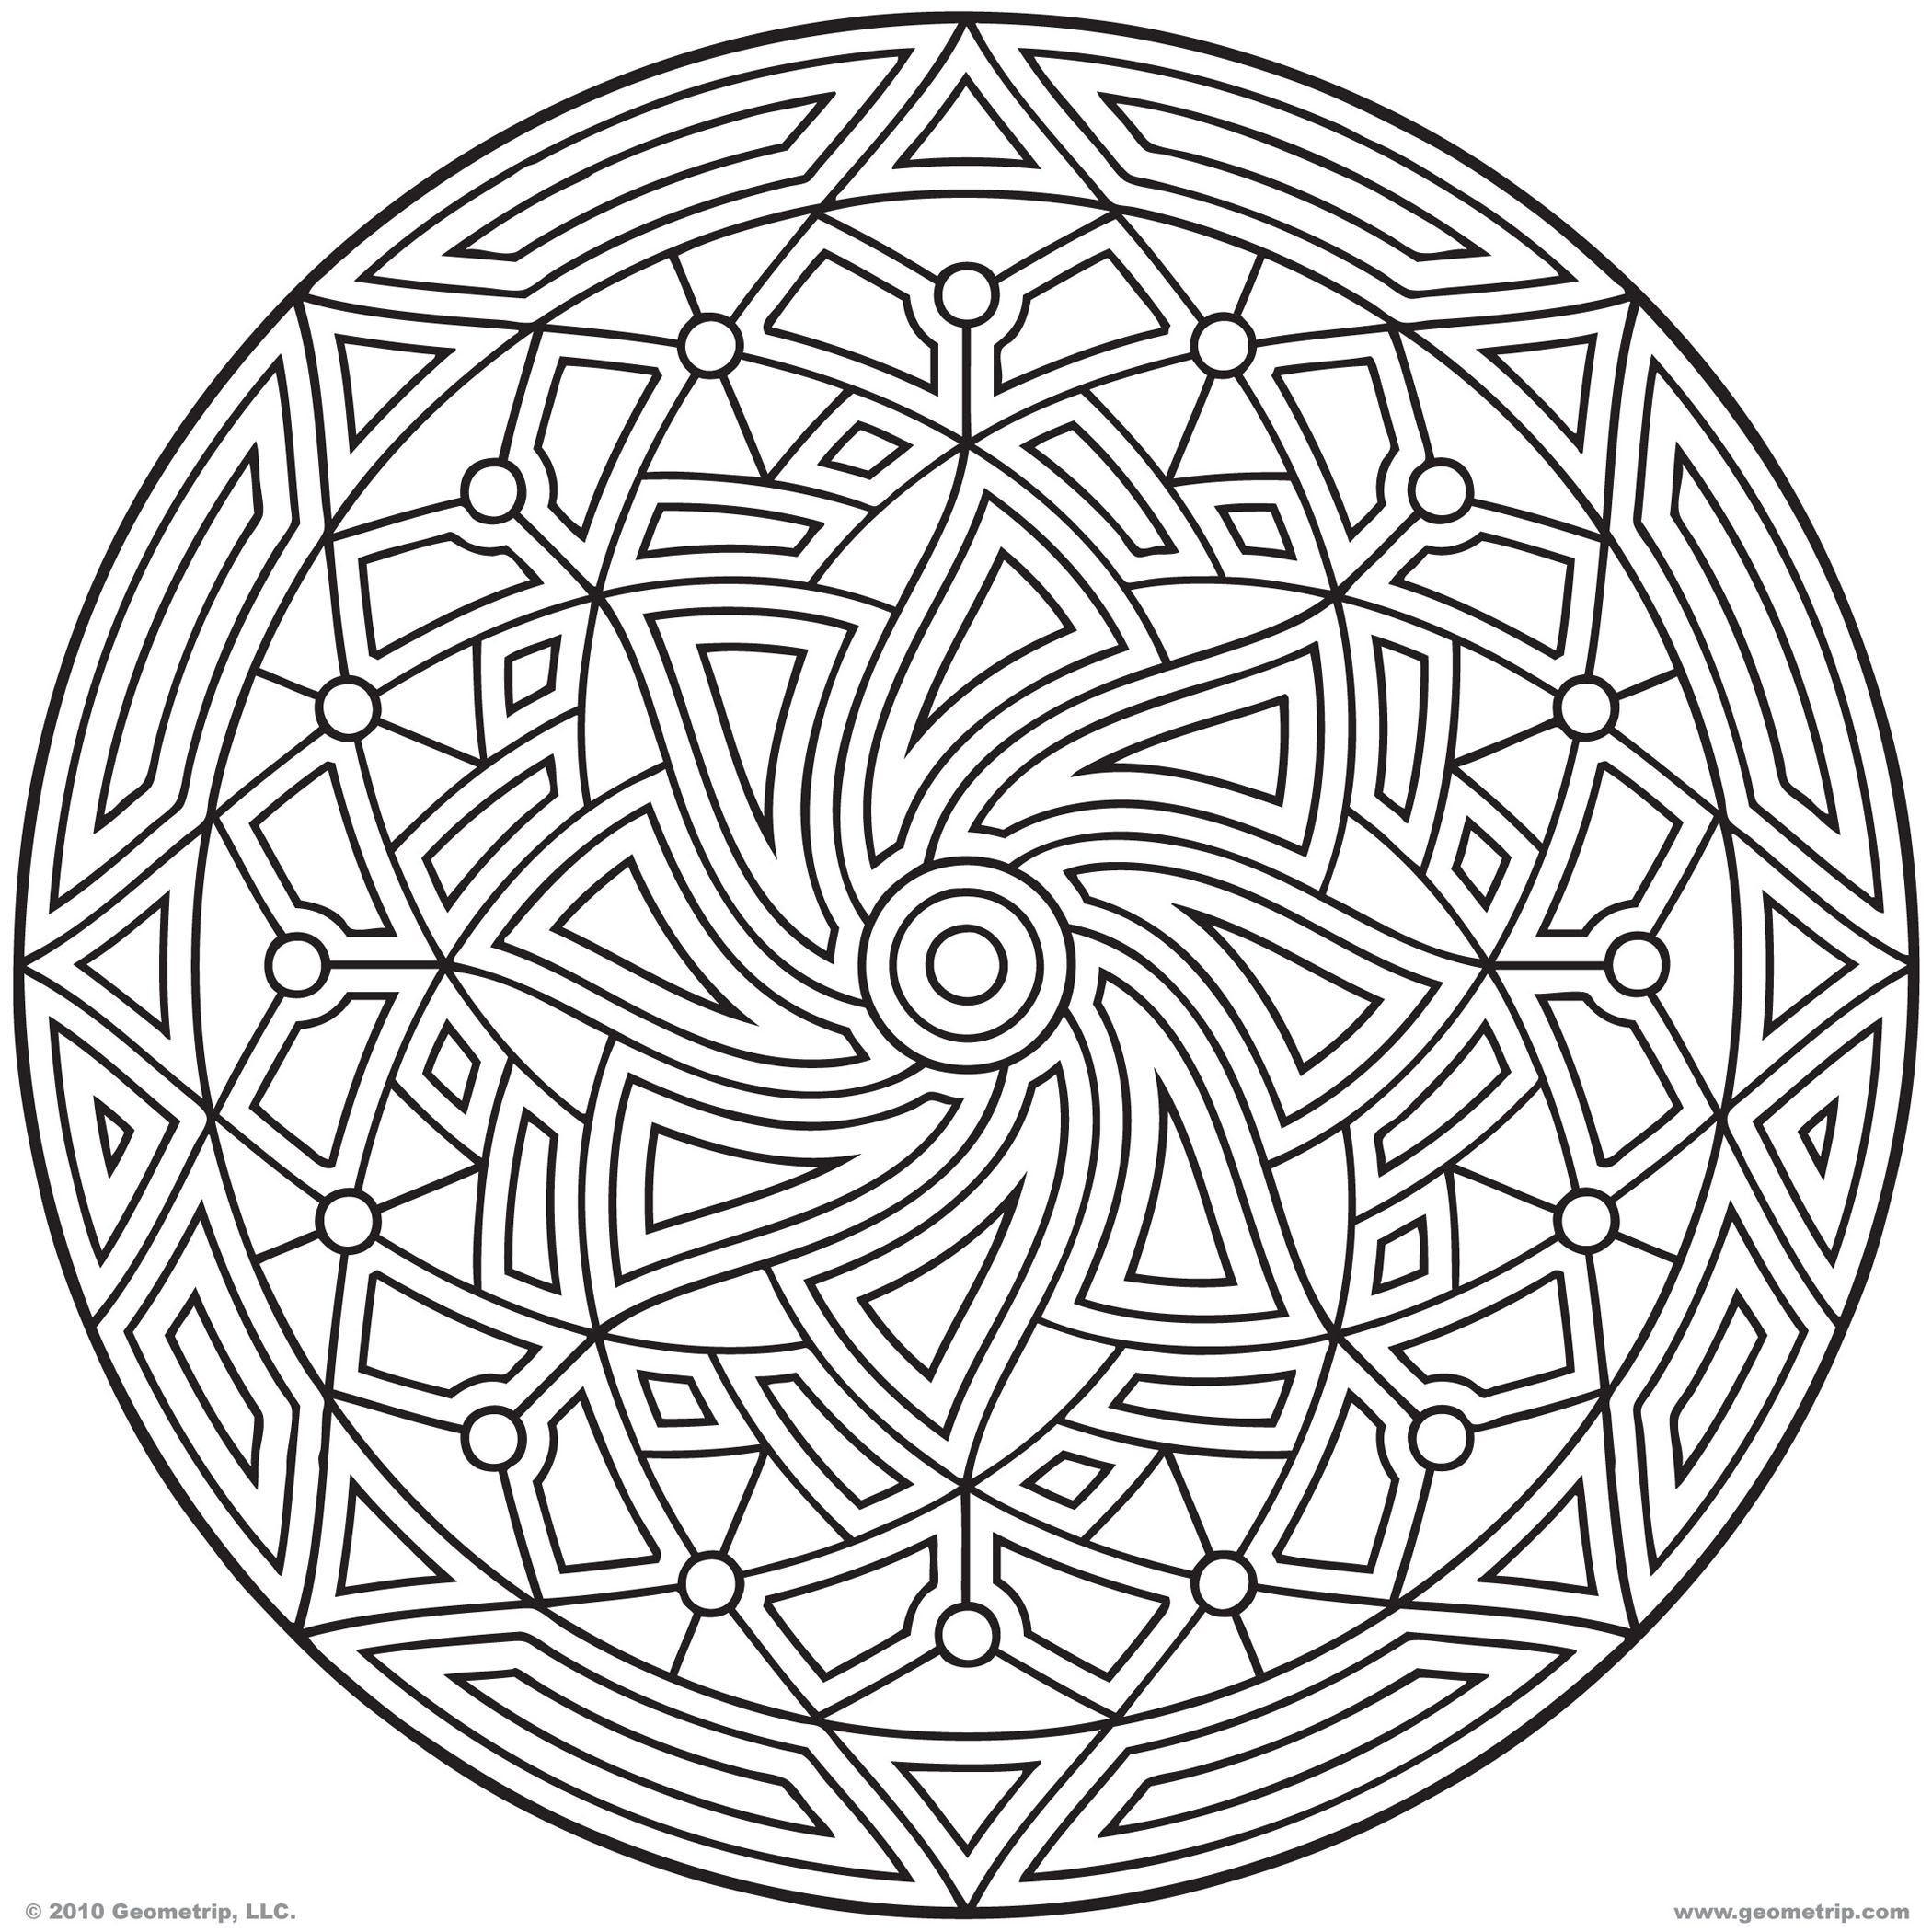 Jewish mandala coloring pages - Images Of Printable Hard Geometric Coloring Pages Geometrip Com Free Geometric Coloring Designs